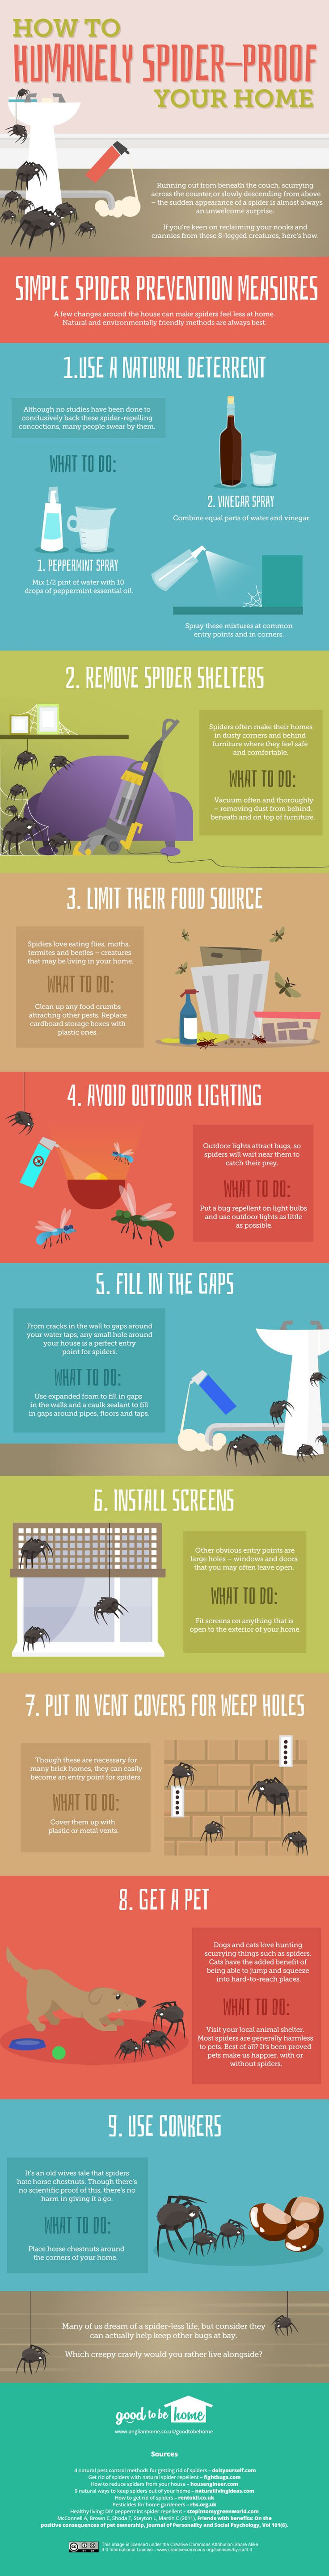 How to get rid of spiders from your home [infographic] | ecogreenlove ••• Brought to you by Anglian Home's Good to be Home